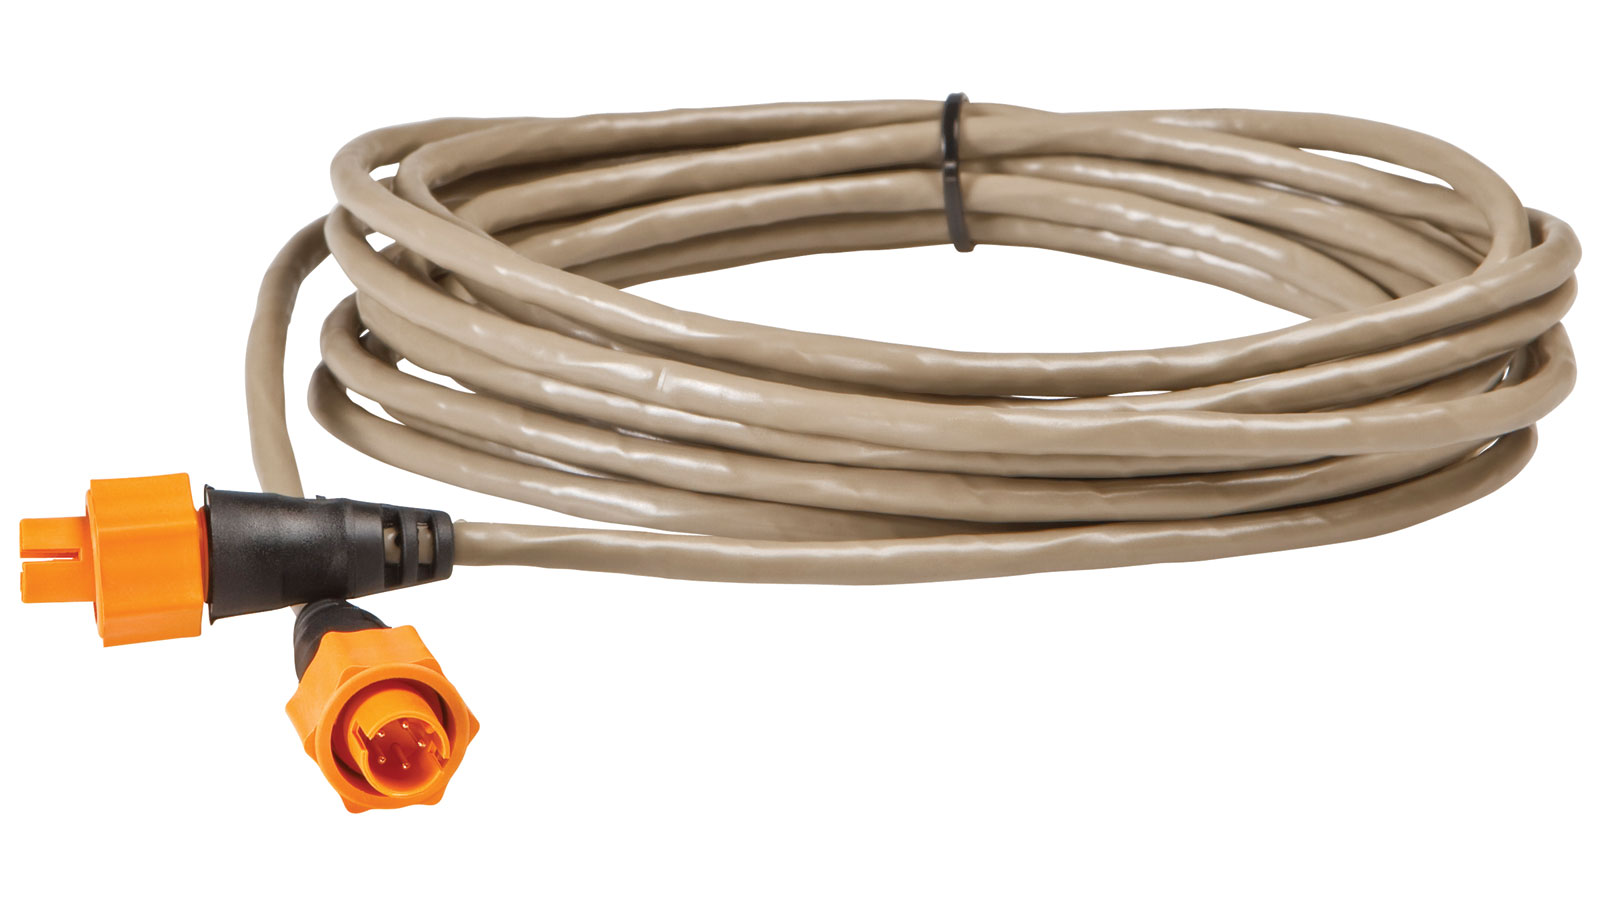 Lowrance 6 ft Ethernet Crossover Cable Multi - Boats|Motors|Marine Electronics, Marine Electronics And Radios at Academy Sports Multi (535568) - Boats|Motors...